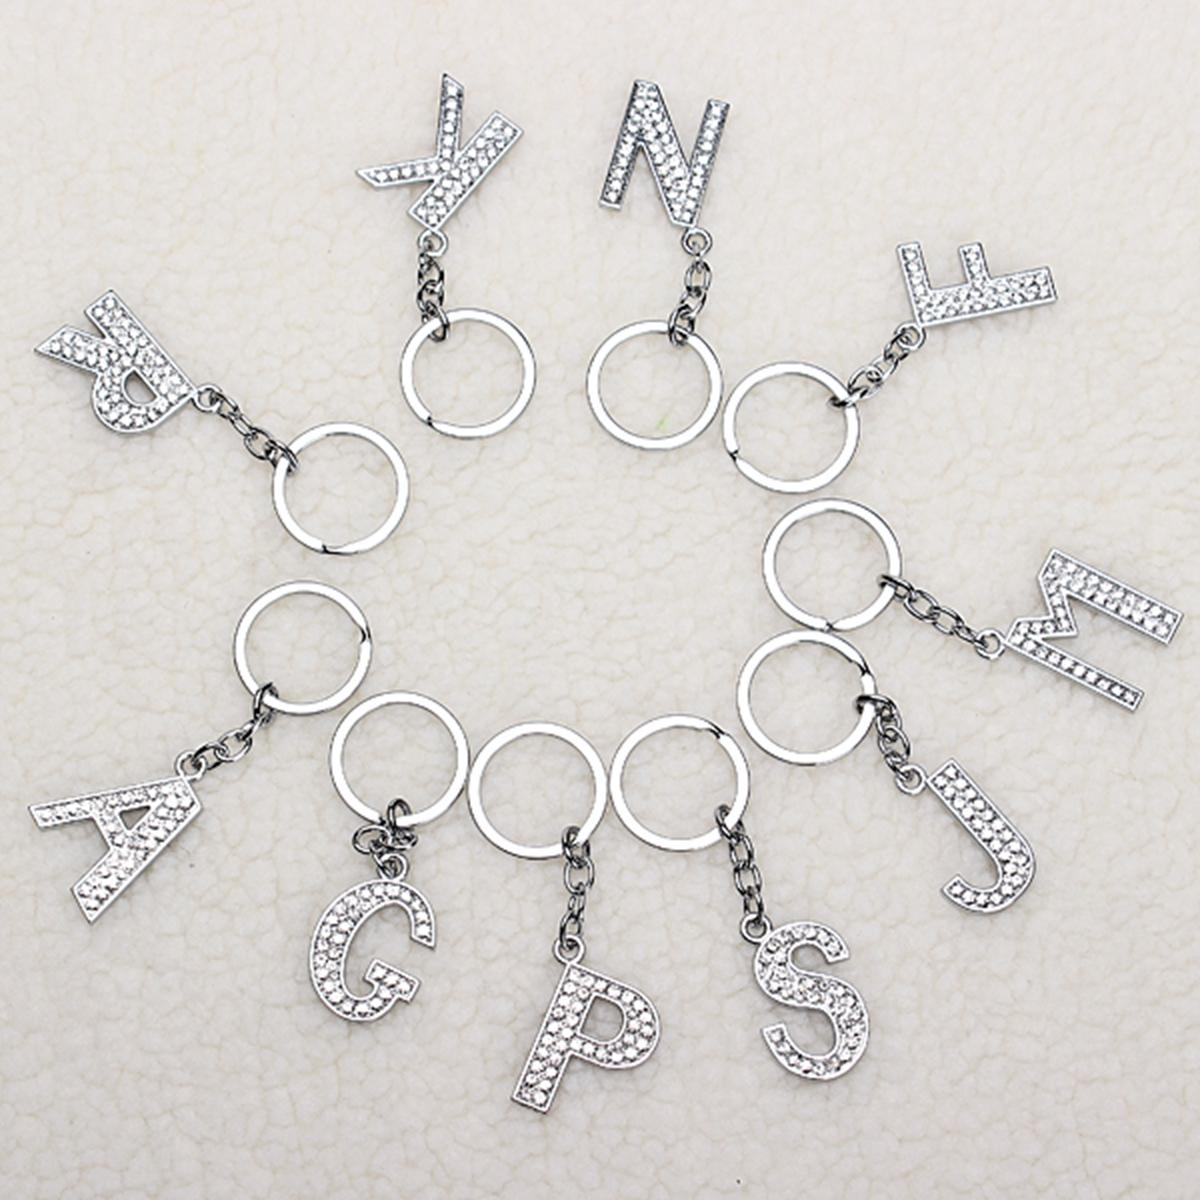 Simple Style Charm Letter Initial Key Ring Shiny Crystal Silver Key Chain Tag - 2